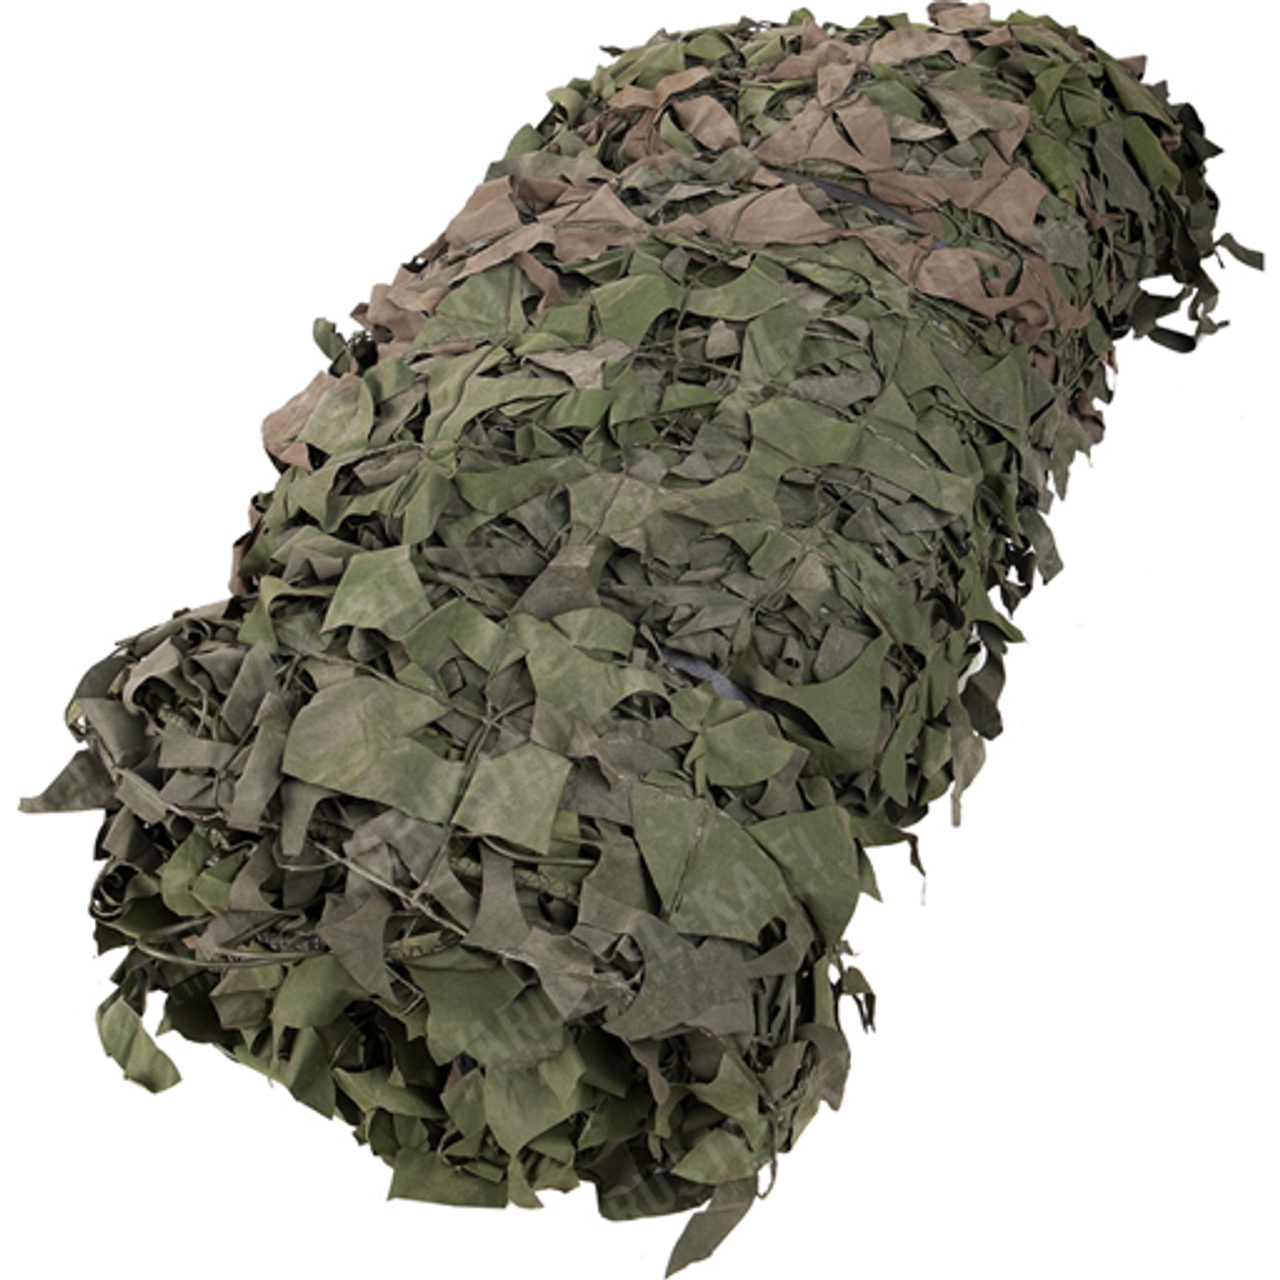 Canadian Armed Forces Camo Netting